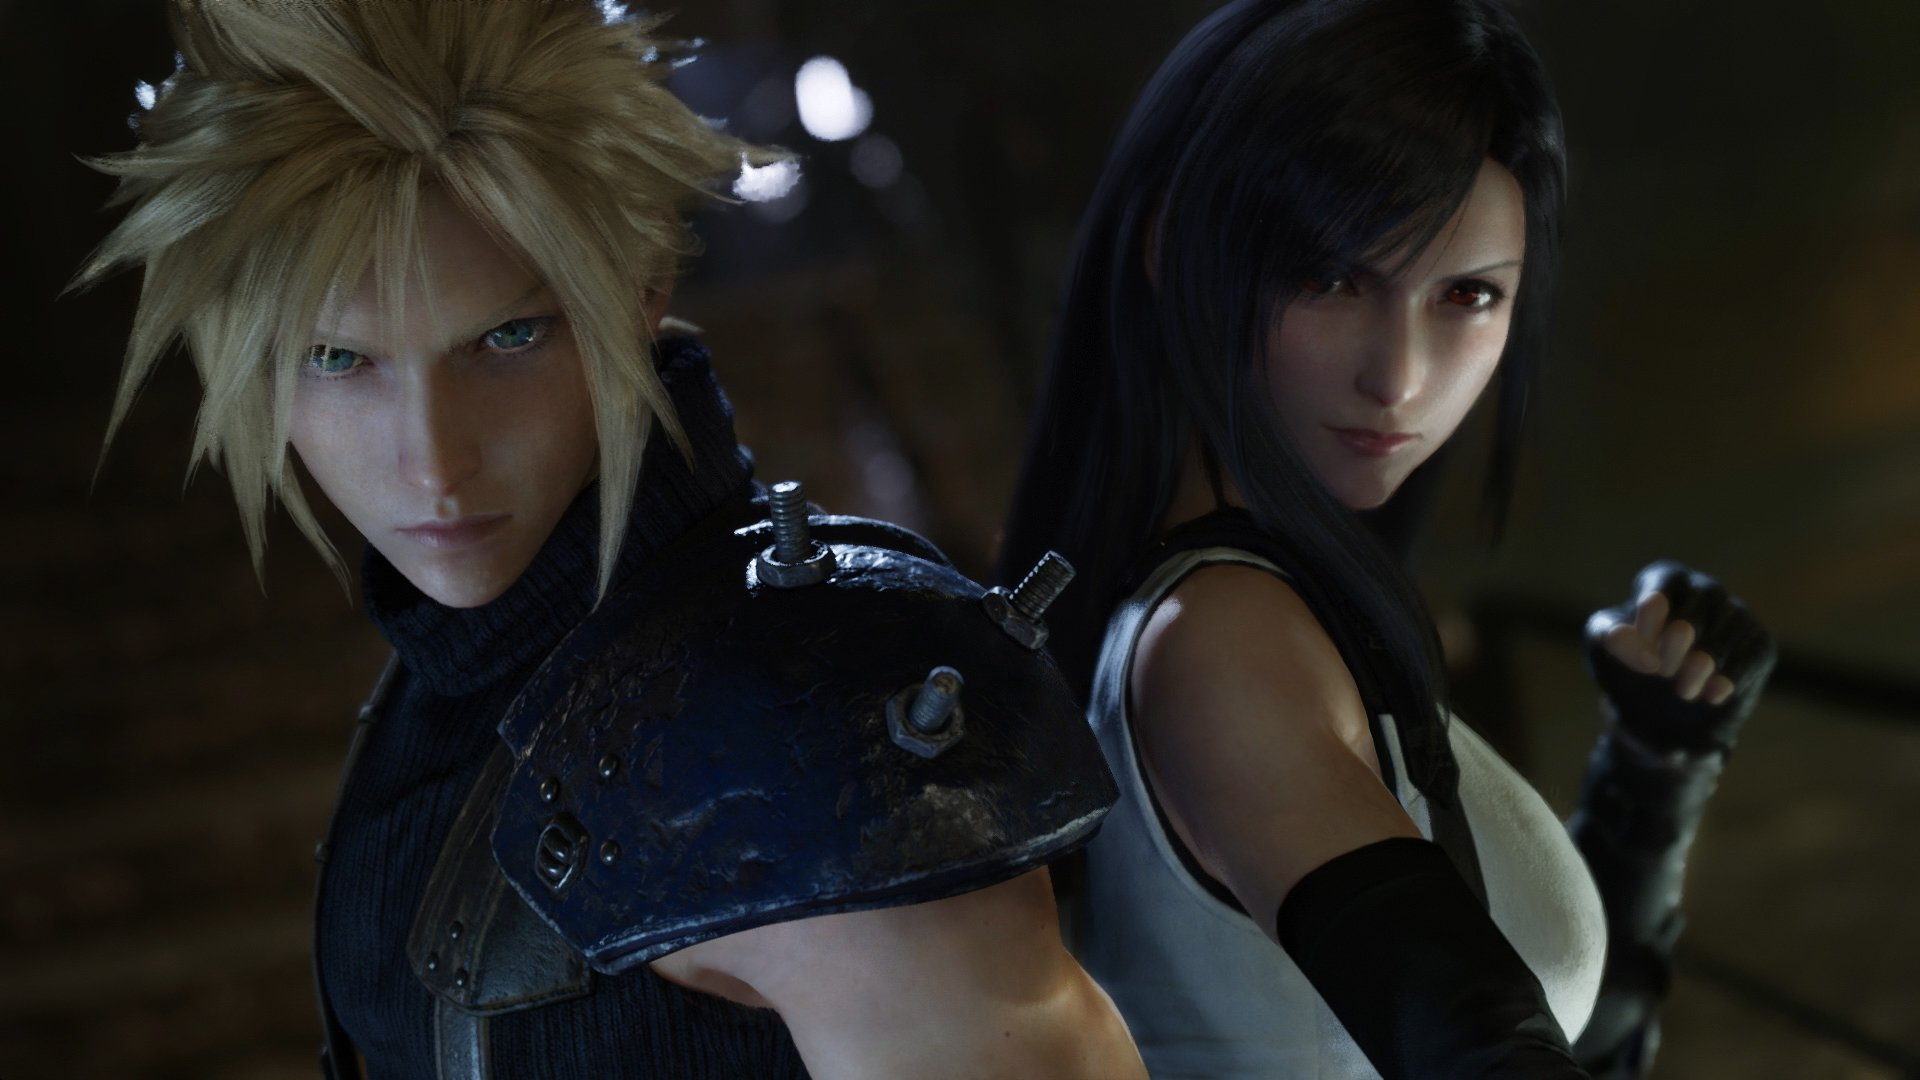 Final Fantasy VII Remake boss claims some materia will be cut, some will be added screenshot